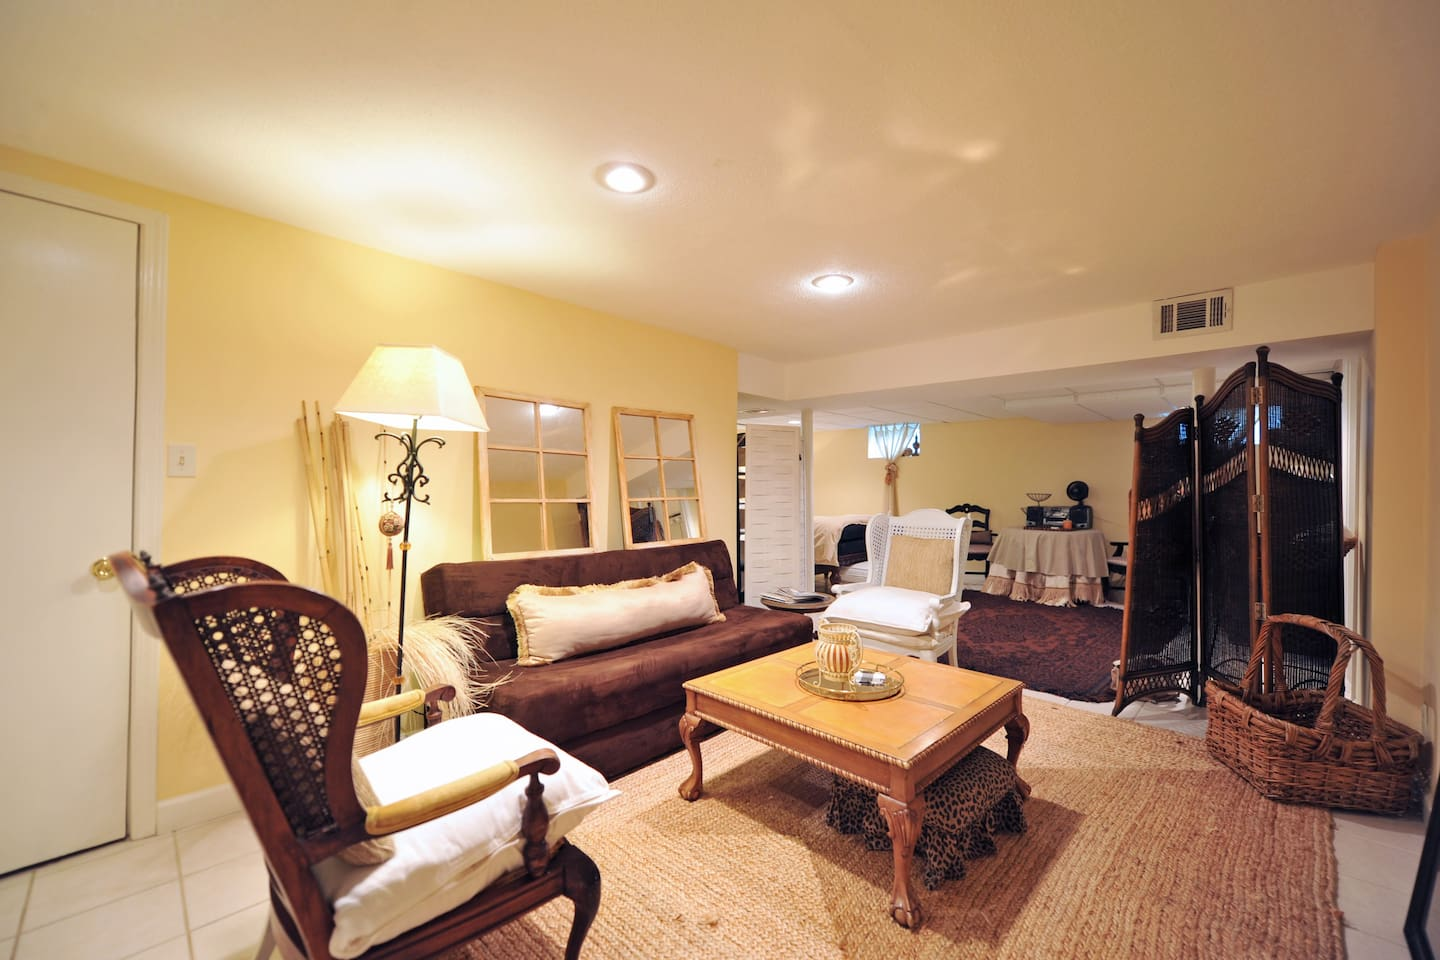 This is a gathering area that includes extra sleeping space in the fold out sofa. Nice place to enjoy while making plans.